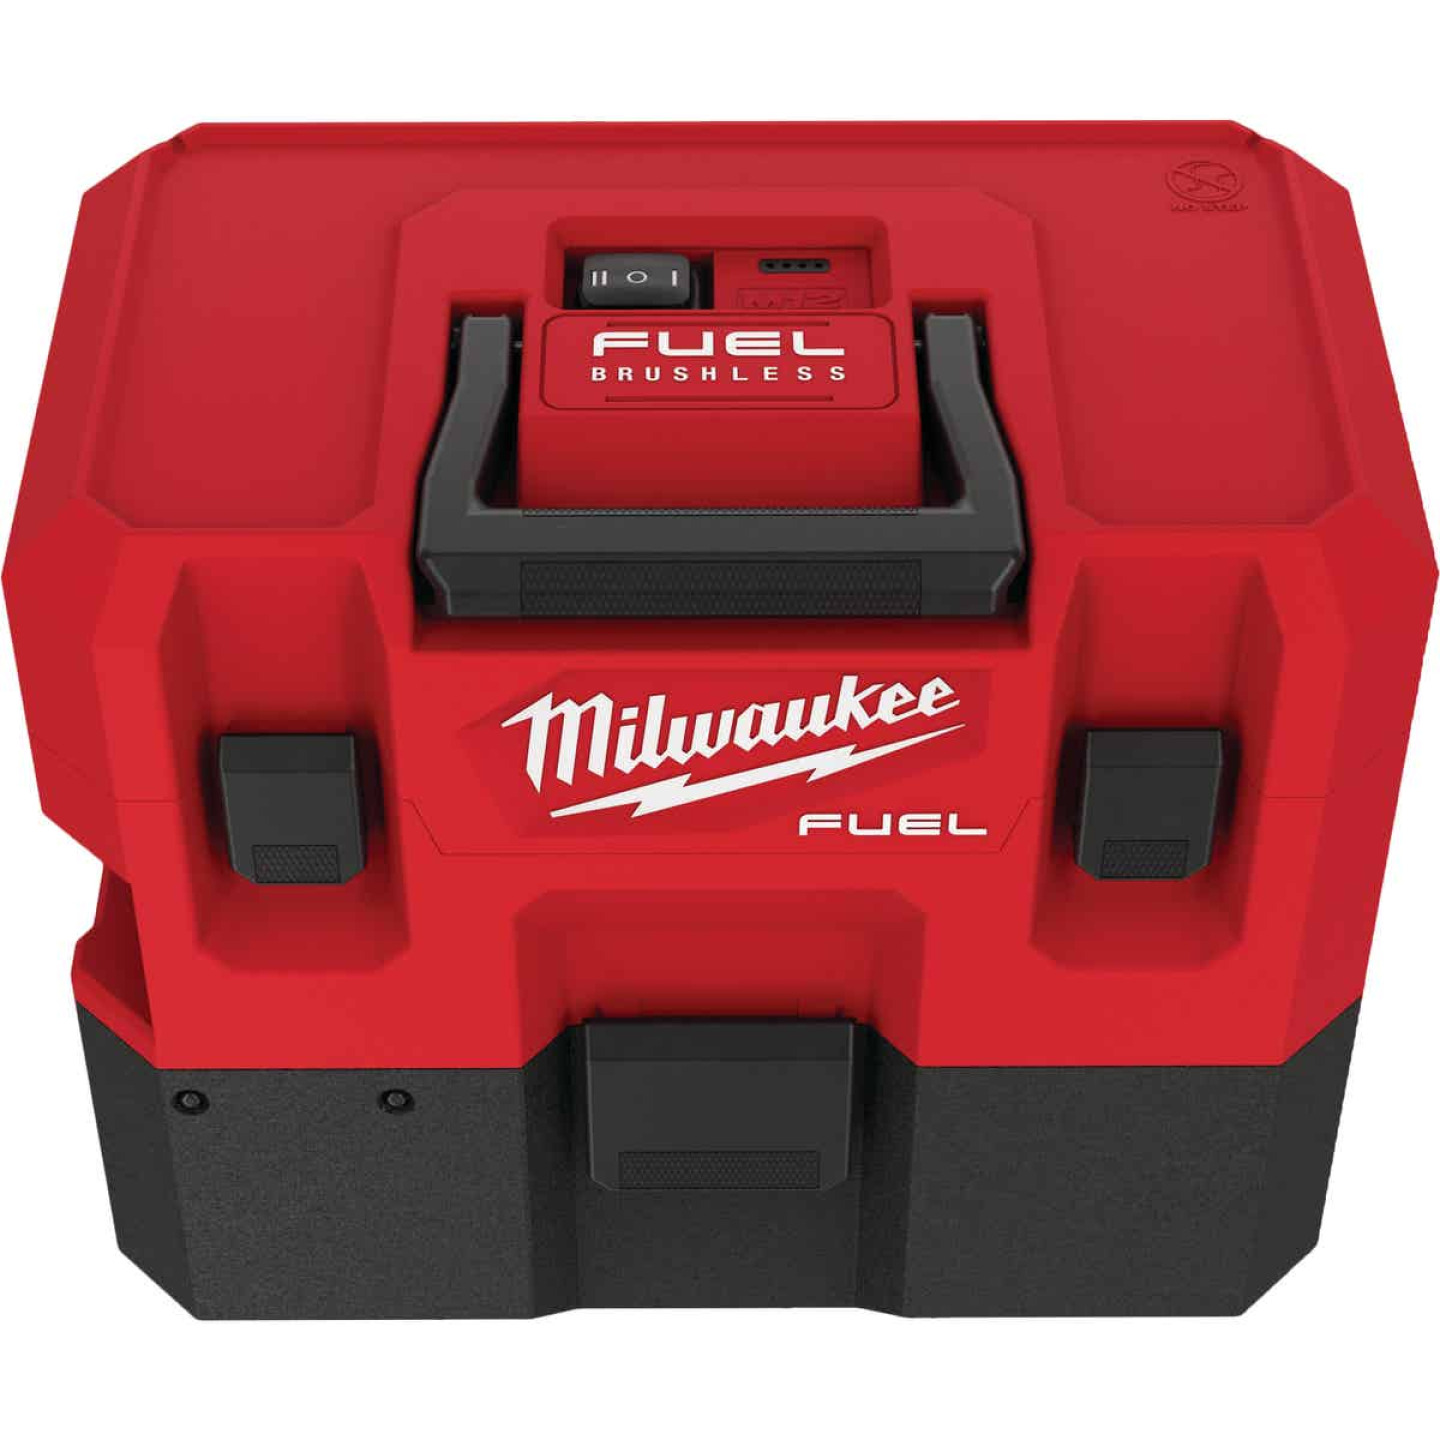 Milwaukee M12 FUEL 12 Volt Lithium-Ion Brushless Cordless 1.6 Gal. Wet/Dry Vacuum (Bare Tool) Image 1